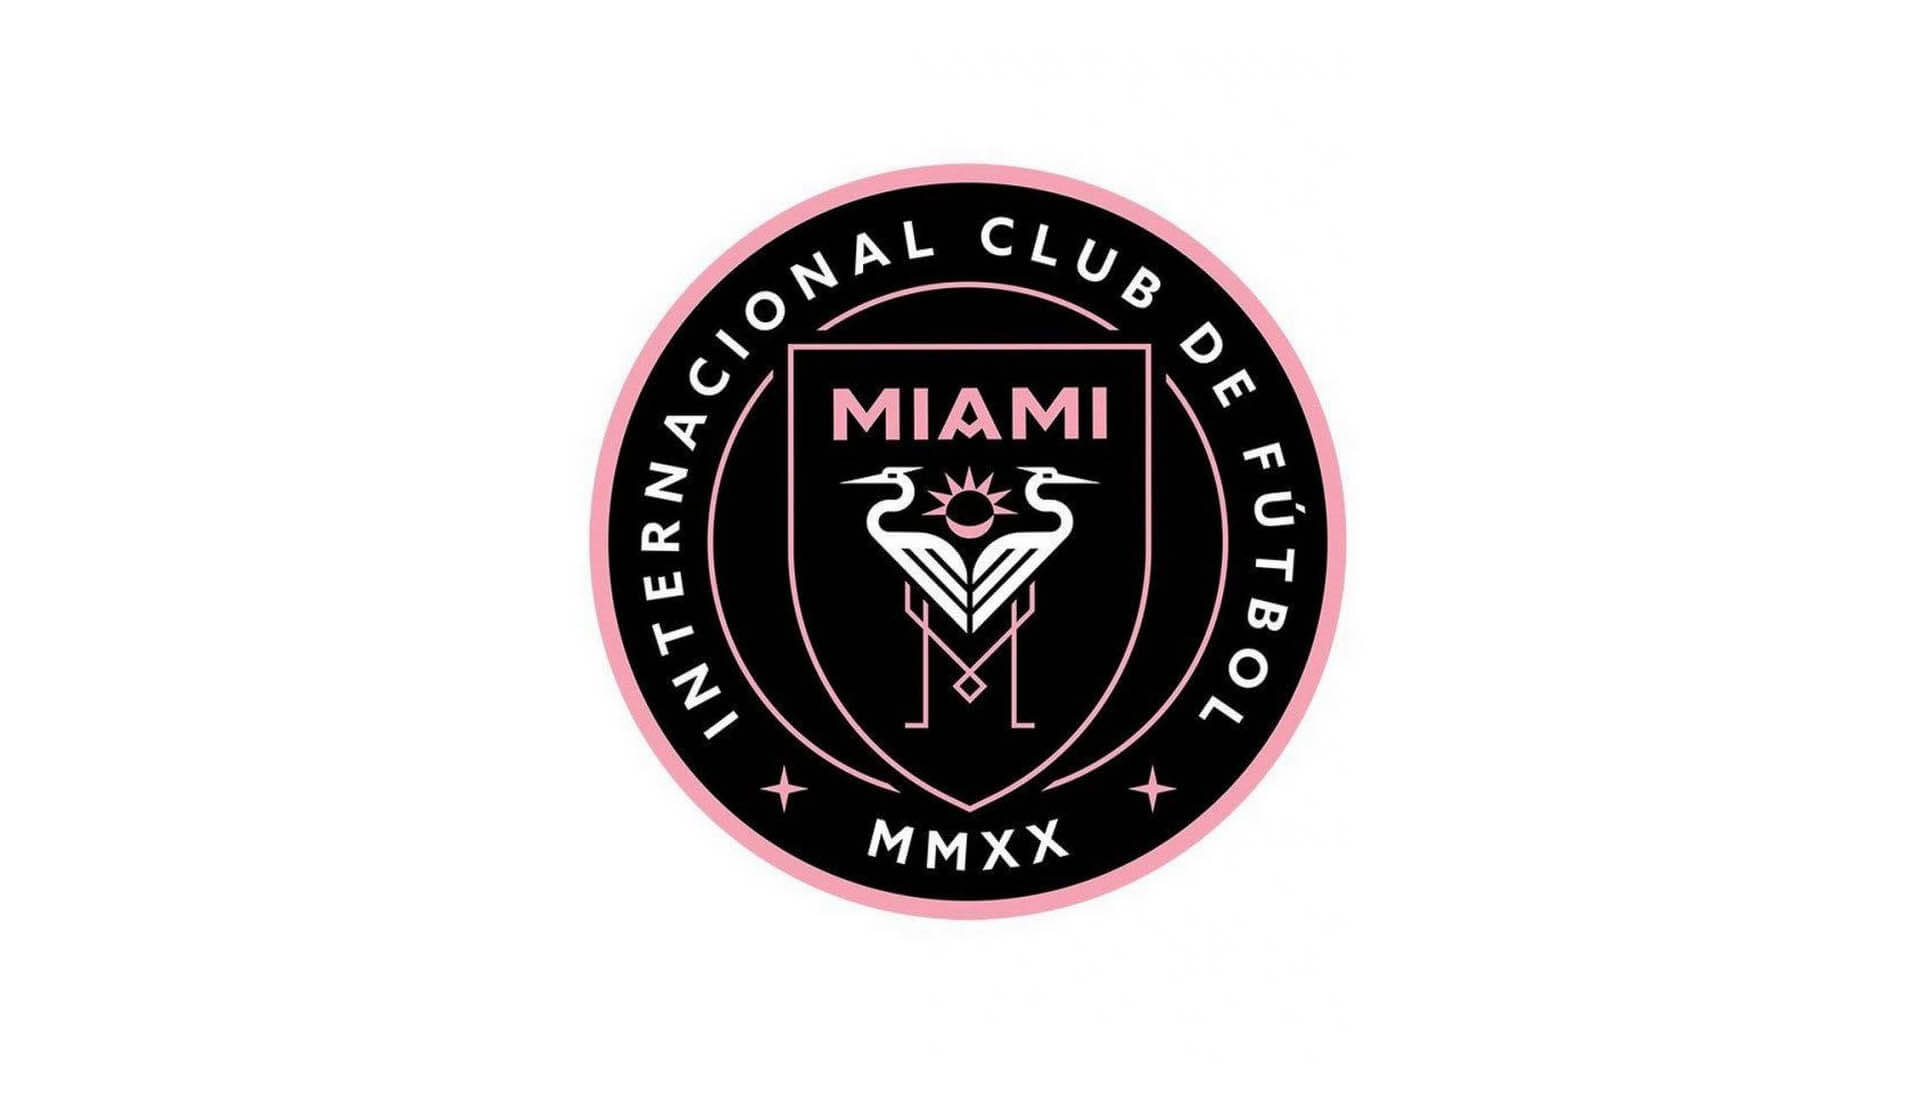 b1fb29ec9 Could This Be The Crest of David Beckham's Miami Football Club ...